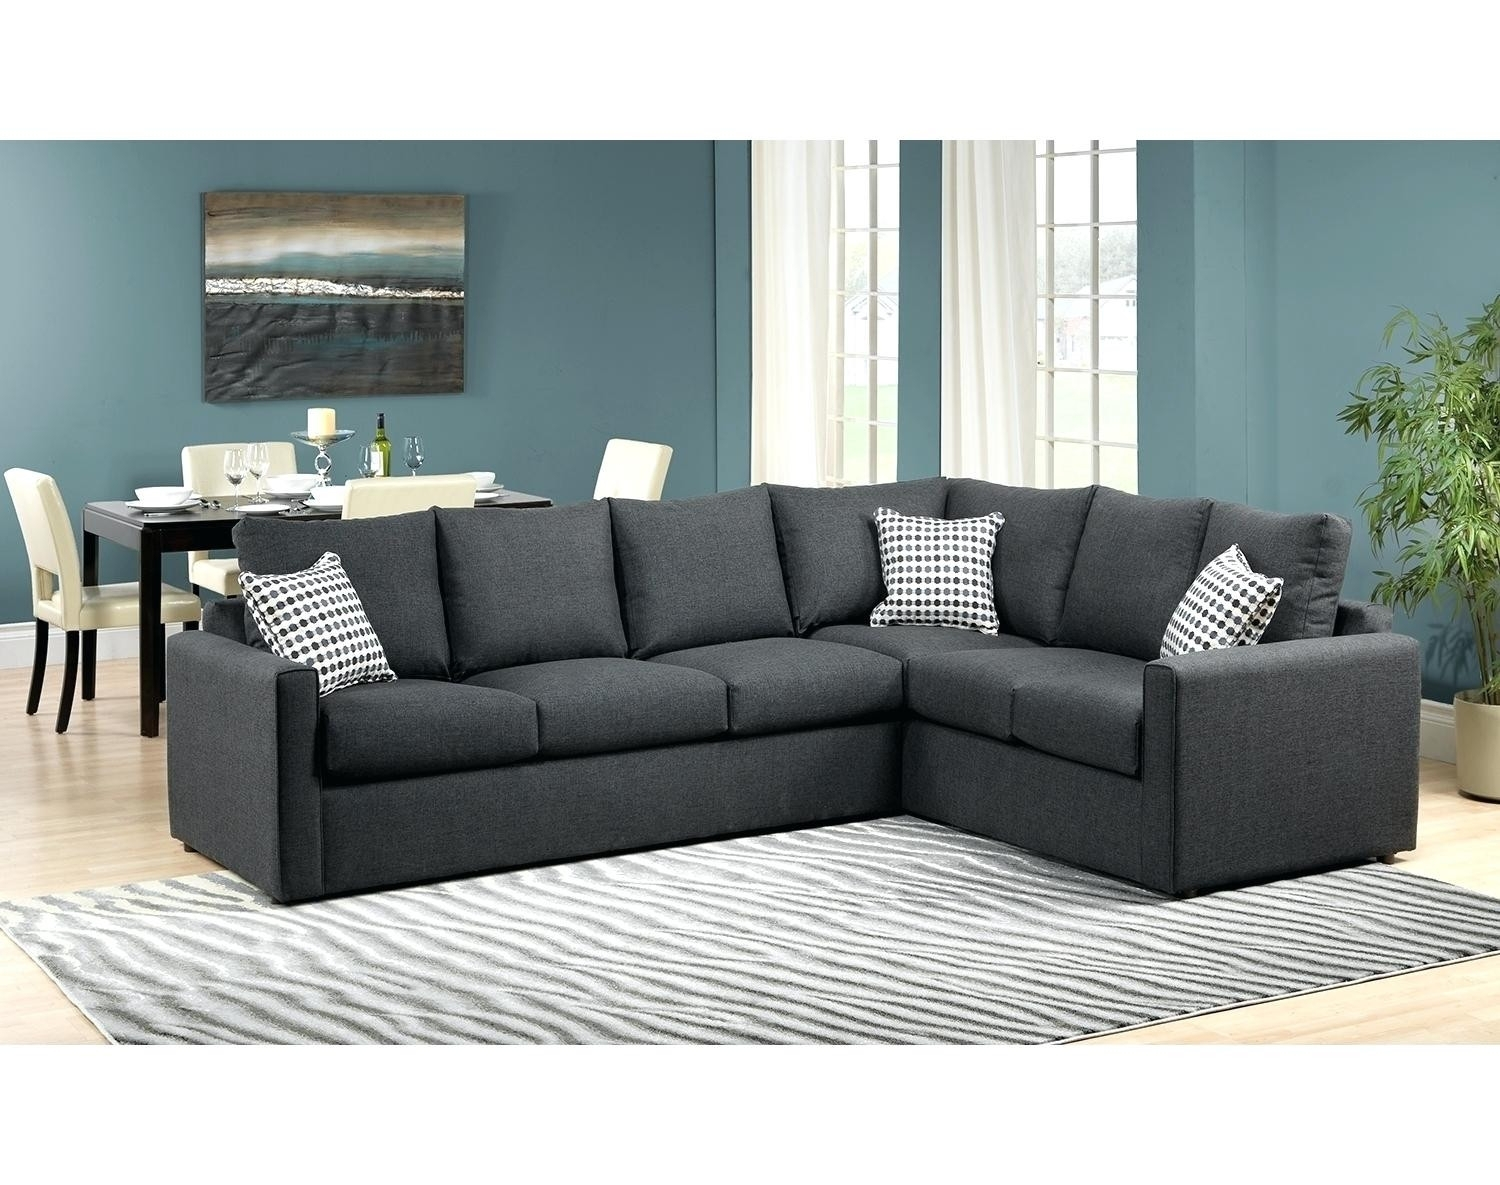 Sofa Bed Sectional Kijiji Toronto Sleeper Sale Canadav 0H The Best Pertaining To Kijiji Montreal Sectional Sofas (Image 10 of 10)